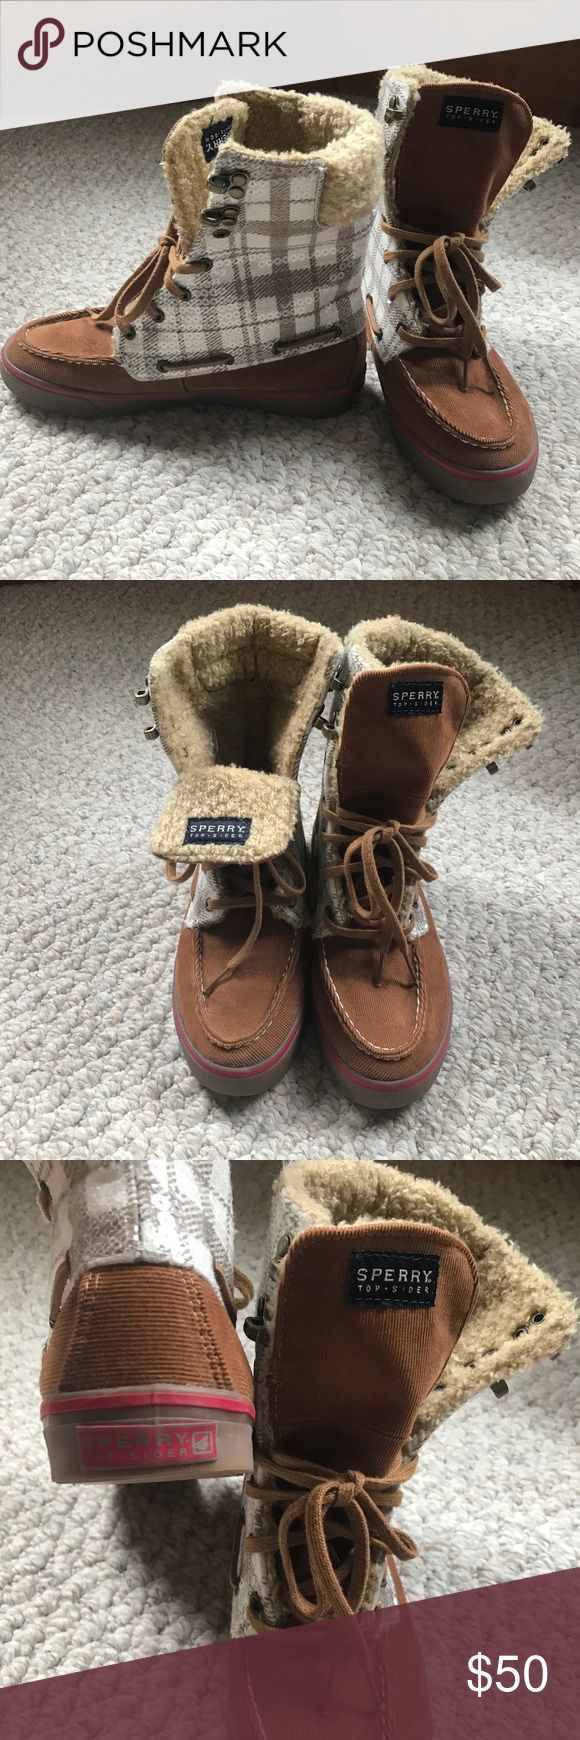 Sperry Top Sider Boots Sperry Top Sider Acklins Fashion Boots. Excellent condition. Women's size 6. Open to offers! Sperry Top-Sider Shoes Ankle Boots & Booties